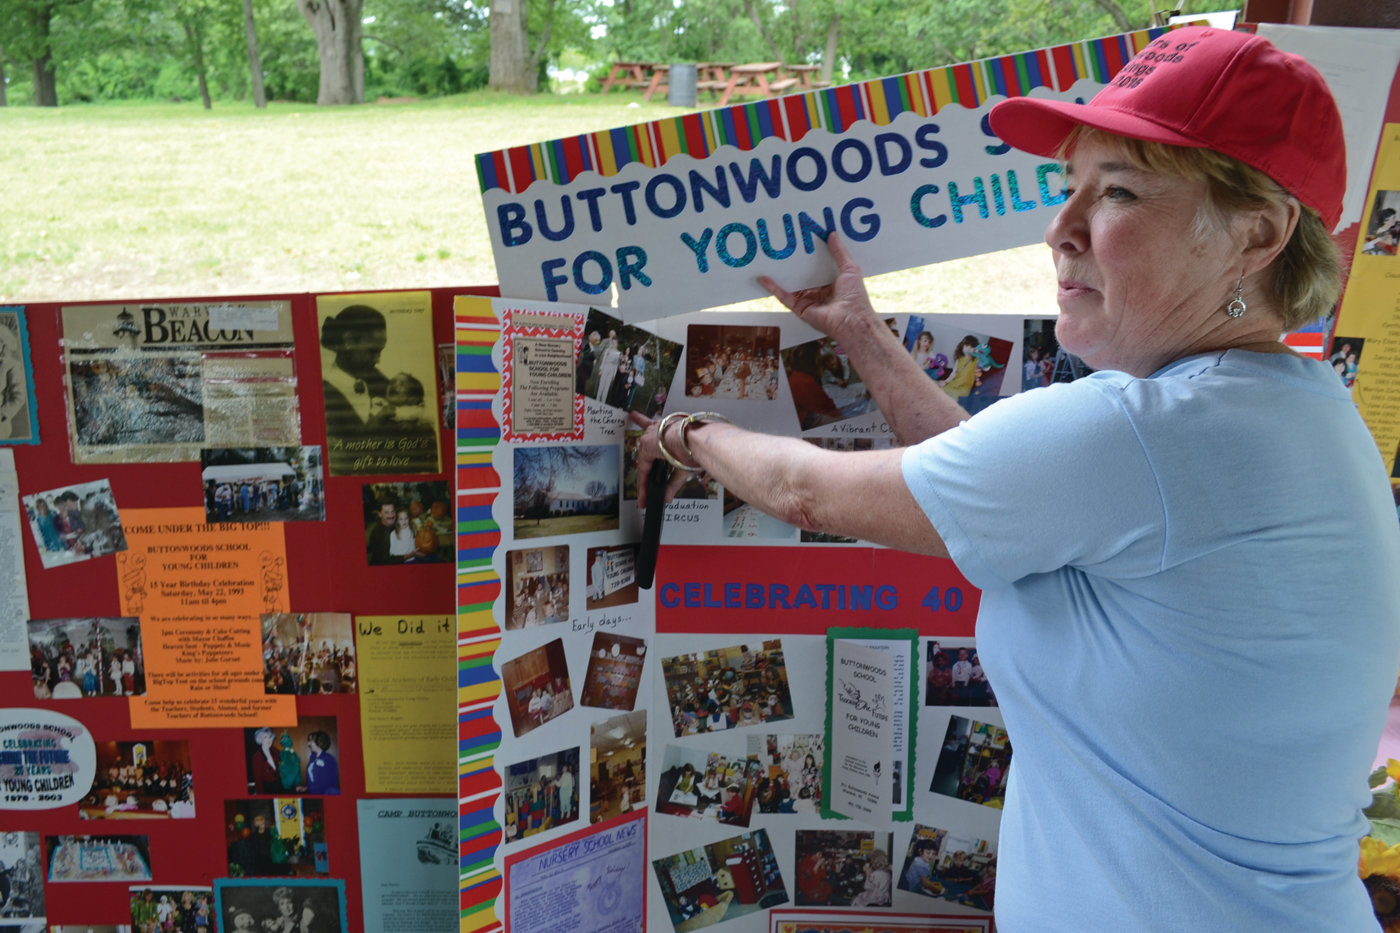 LOTS OF HISTORY: Joyce Ruppell, Buttonwoods School's founder, showed off some historical photos and stories that tell the story of the school's past.